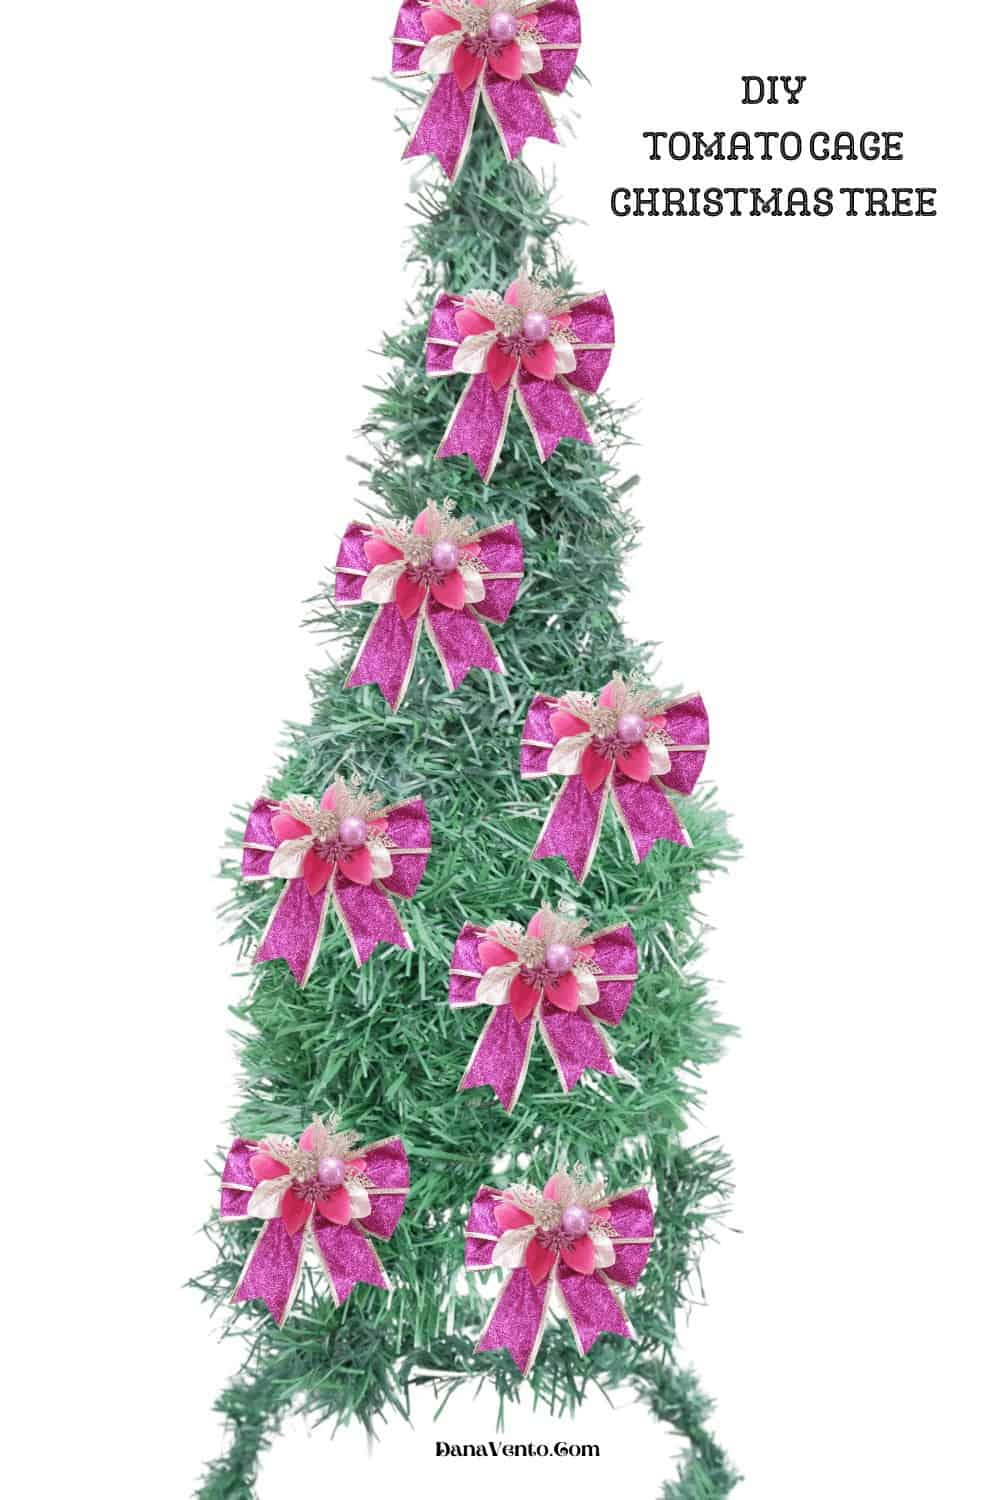 Pink waterproof bows on Tomato Cage Tree